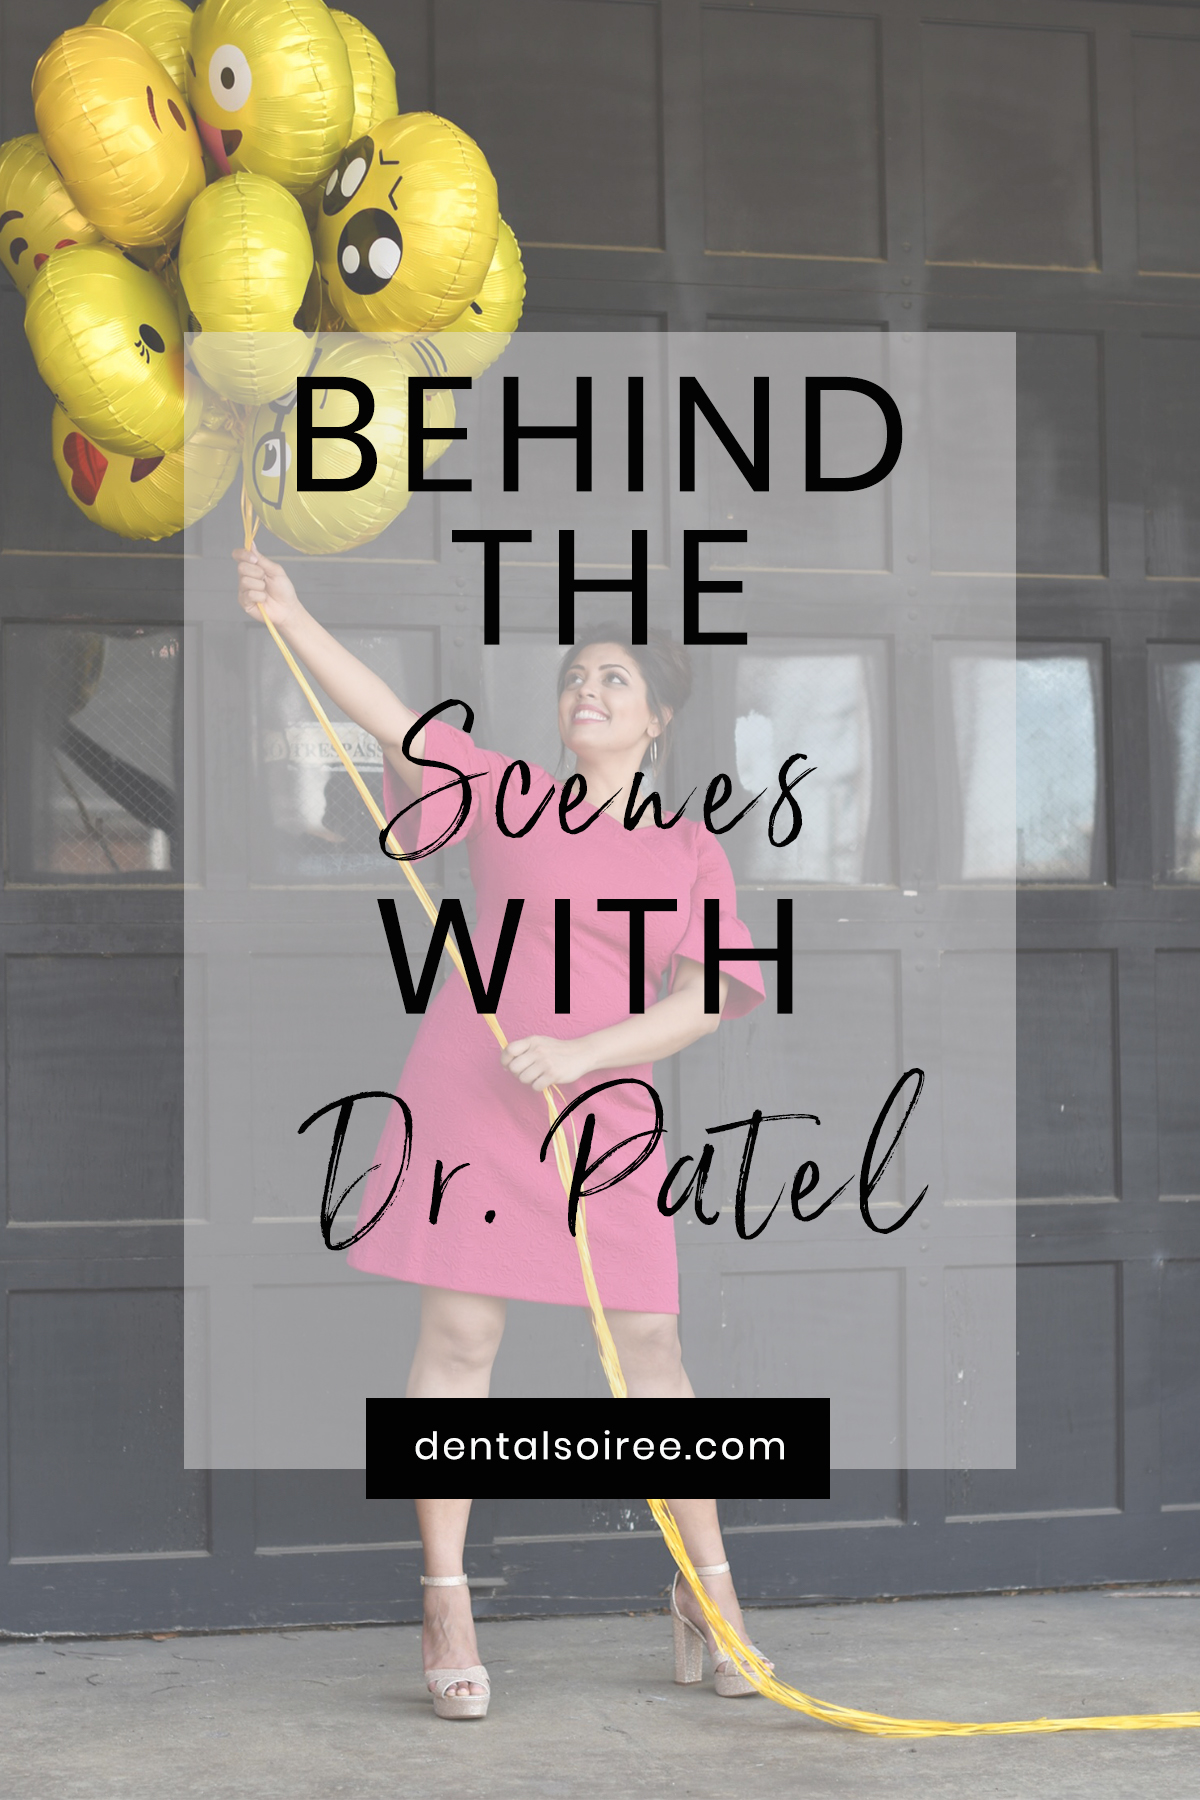 Behind The Scenes With Dr. Meenal Patel!